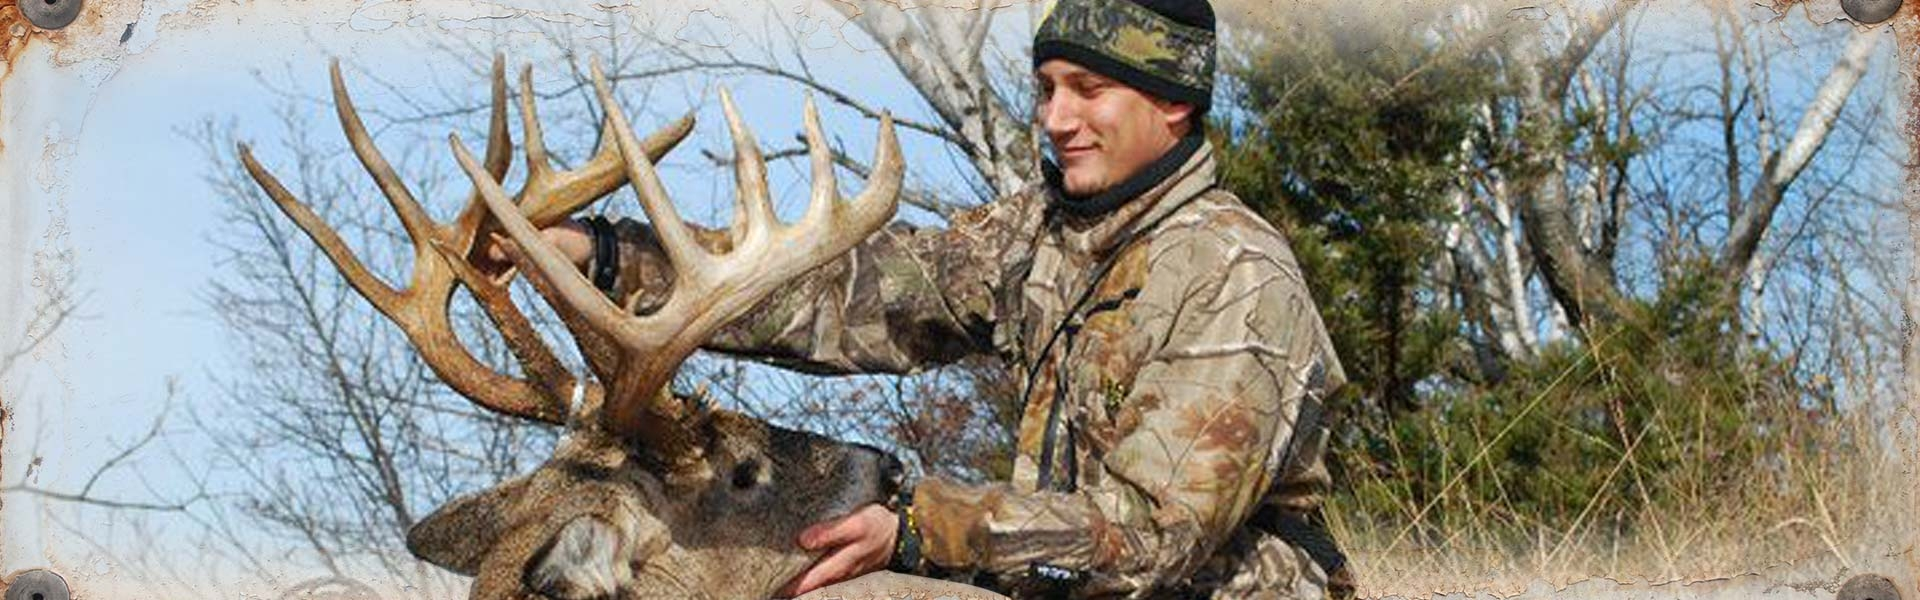 Trophy Whitetail Hunting in Buffalo County